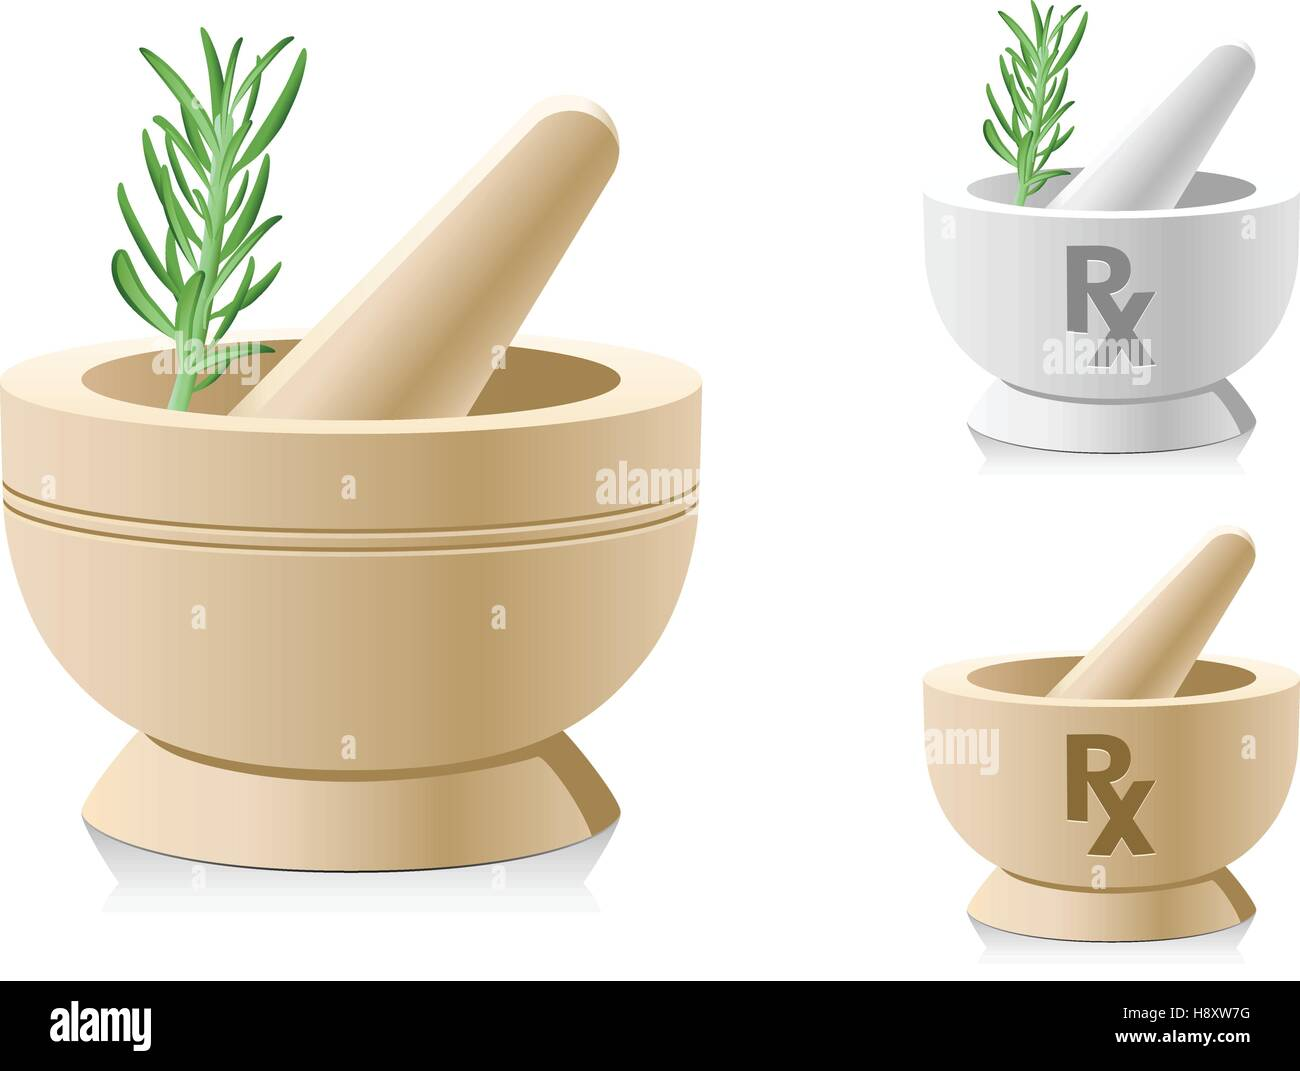 Mortar and pestle with rx symbol for medical prescriptions stock mortar and pestle with rx symbol for medical prescriptions buycottarizona